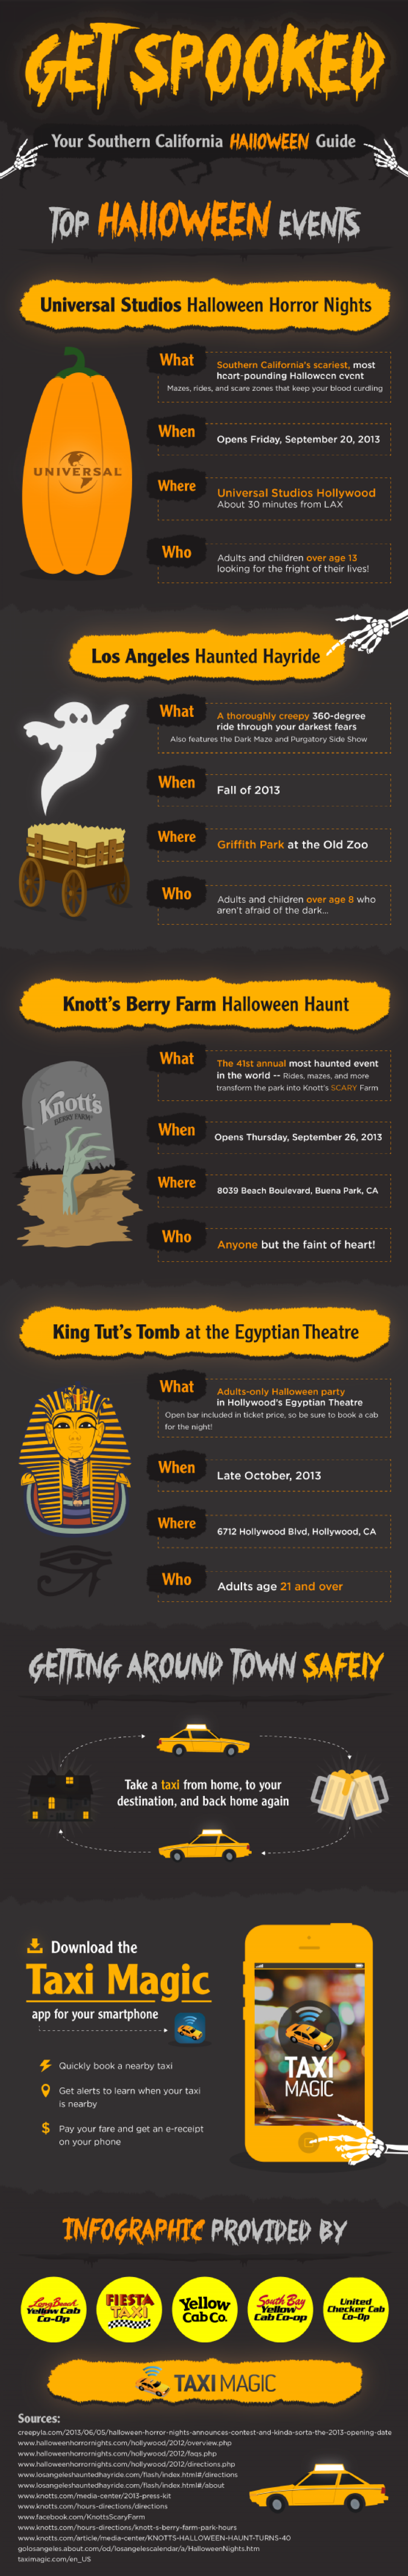 Get Spooked: Your Southern California Halloween Guide Infographic